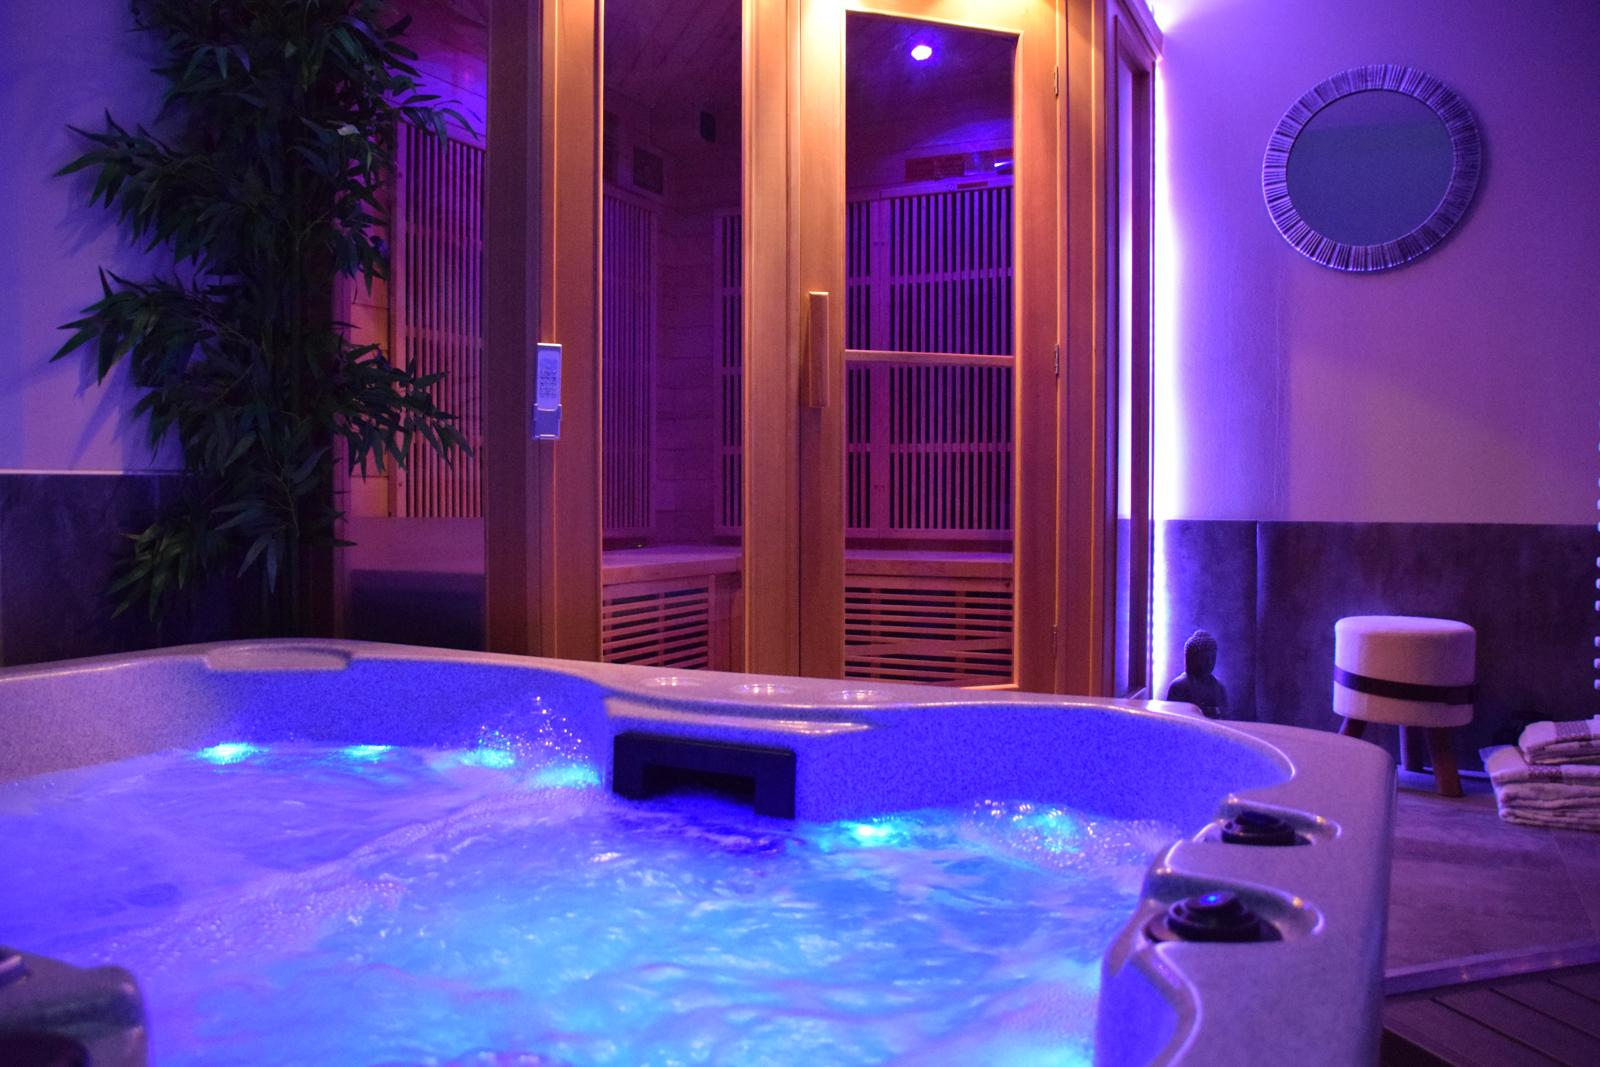 Wellness bathroom with jacuzzi and sauna Dandelion cottage and spa Gorges du Tarn Aveyron